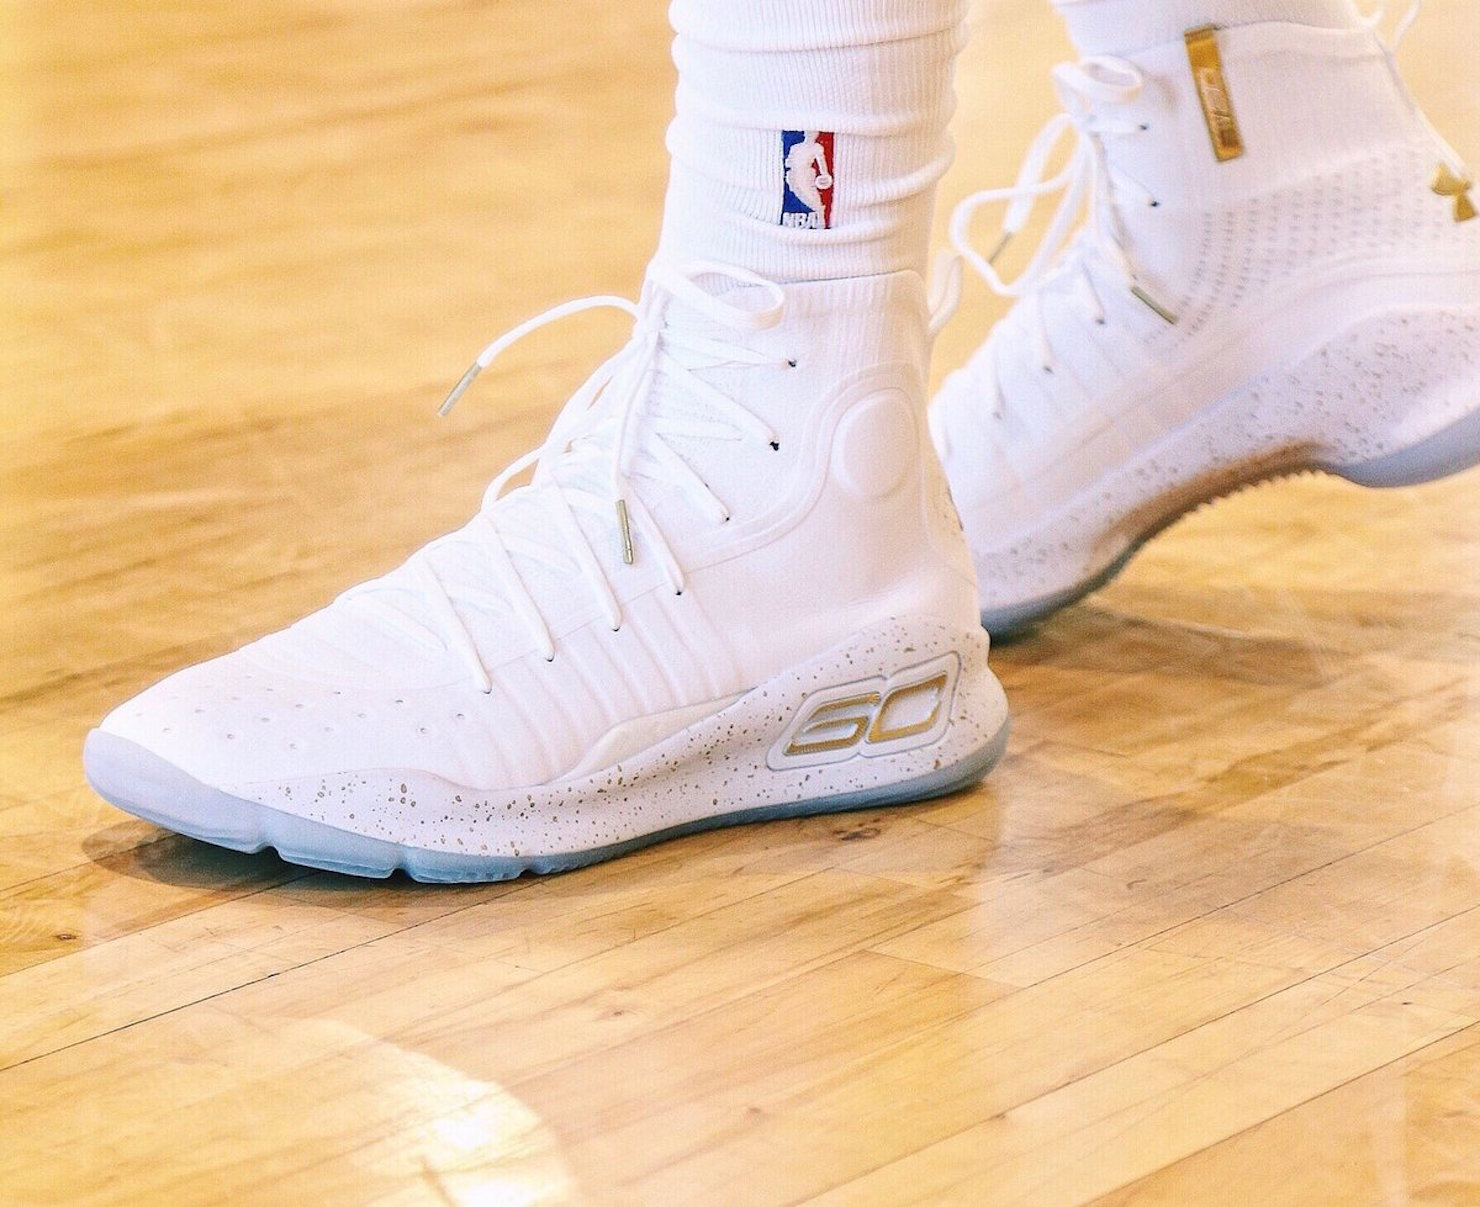 de3345dcbcde Fancred Sports   Steph Curry s brand Under Armour Curry 4 shoes are ...  actually pretty cool!